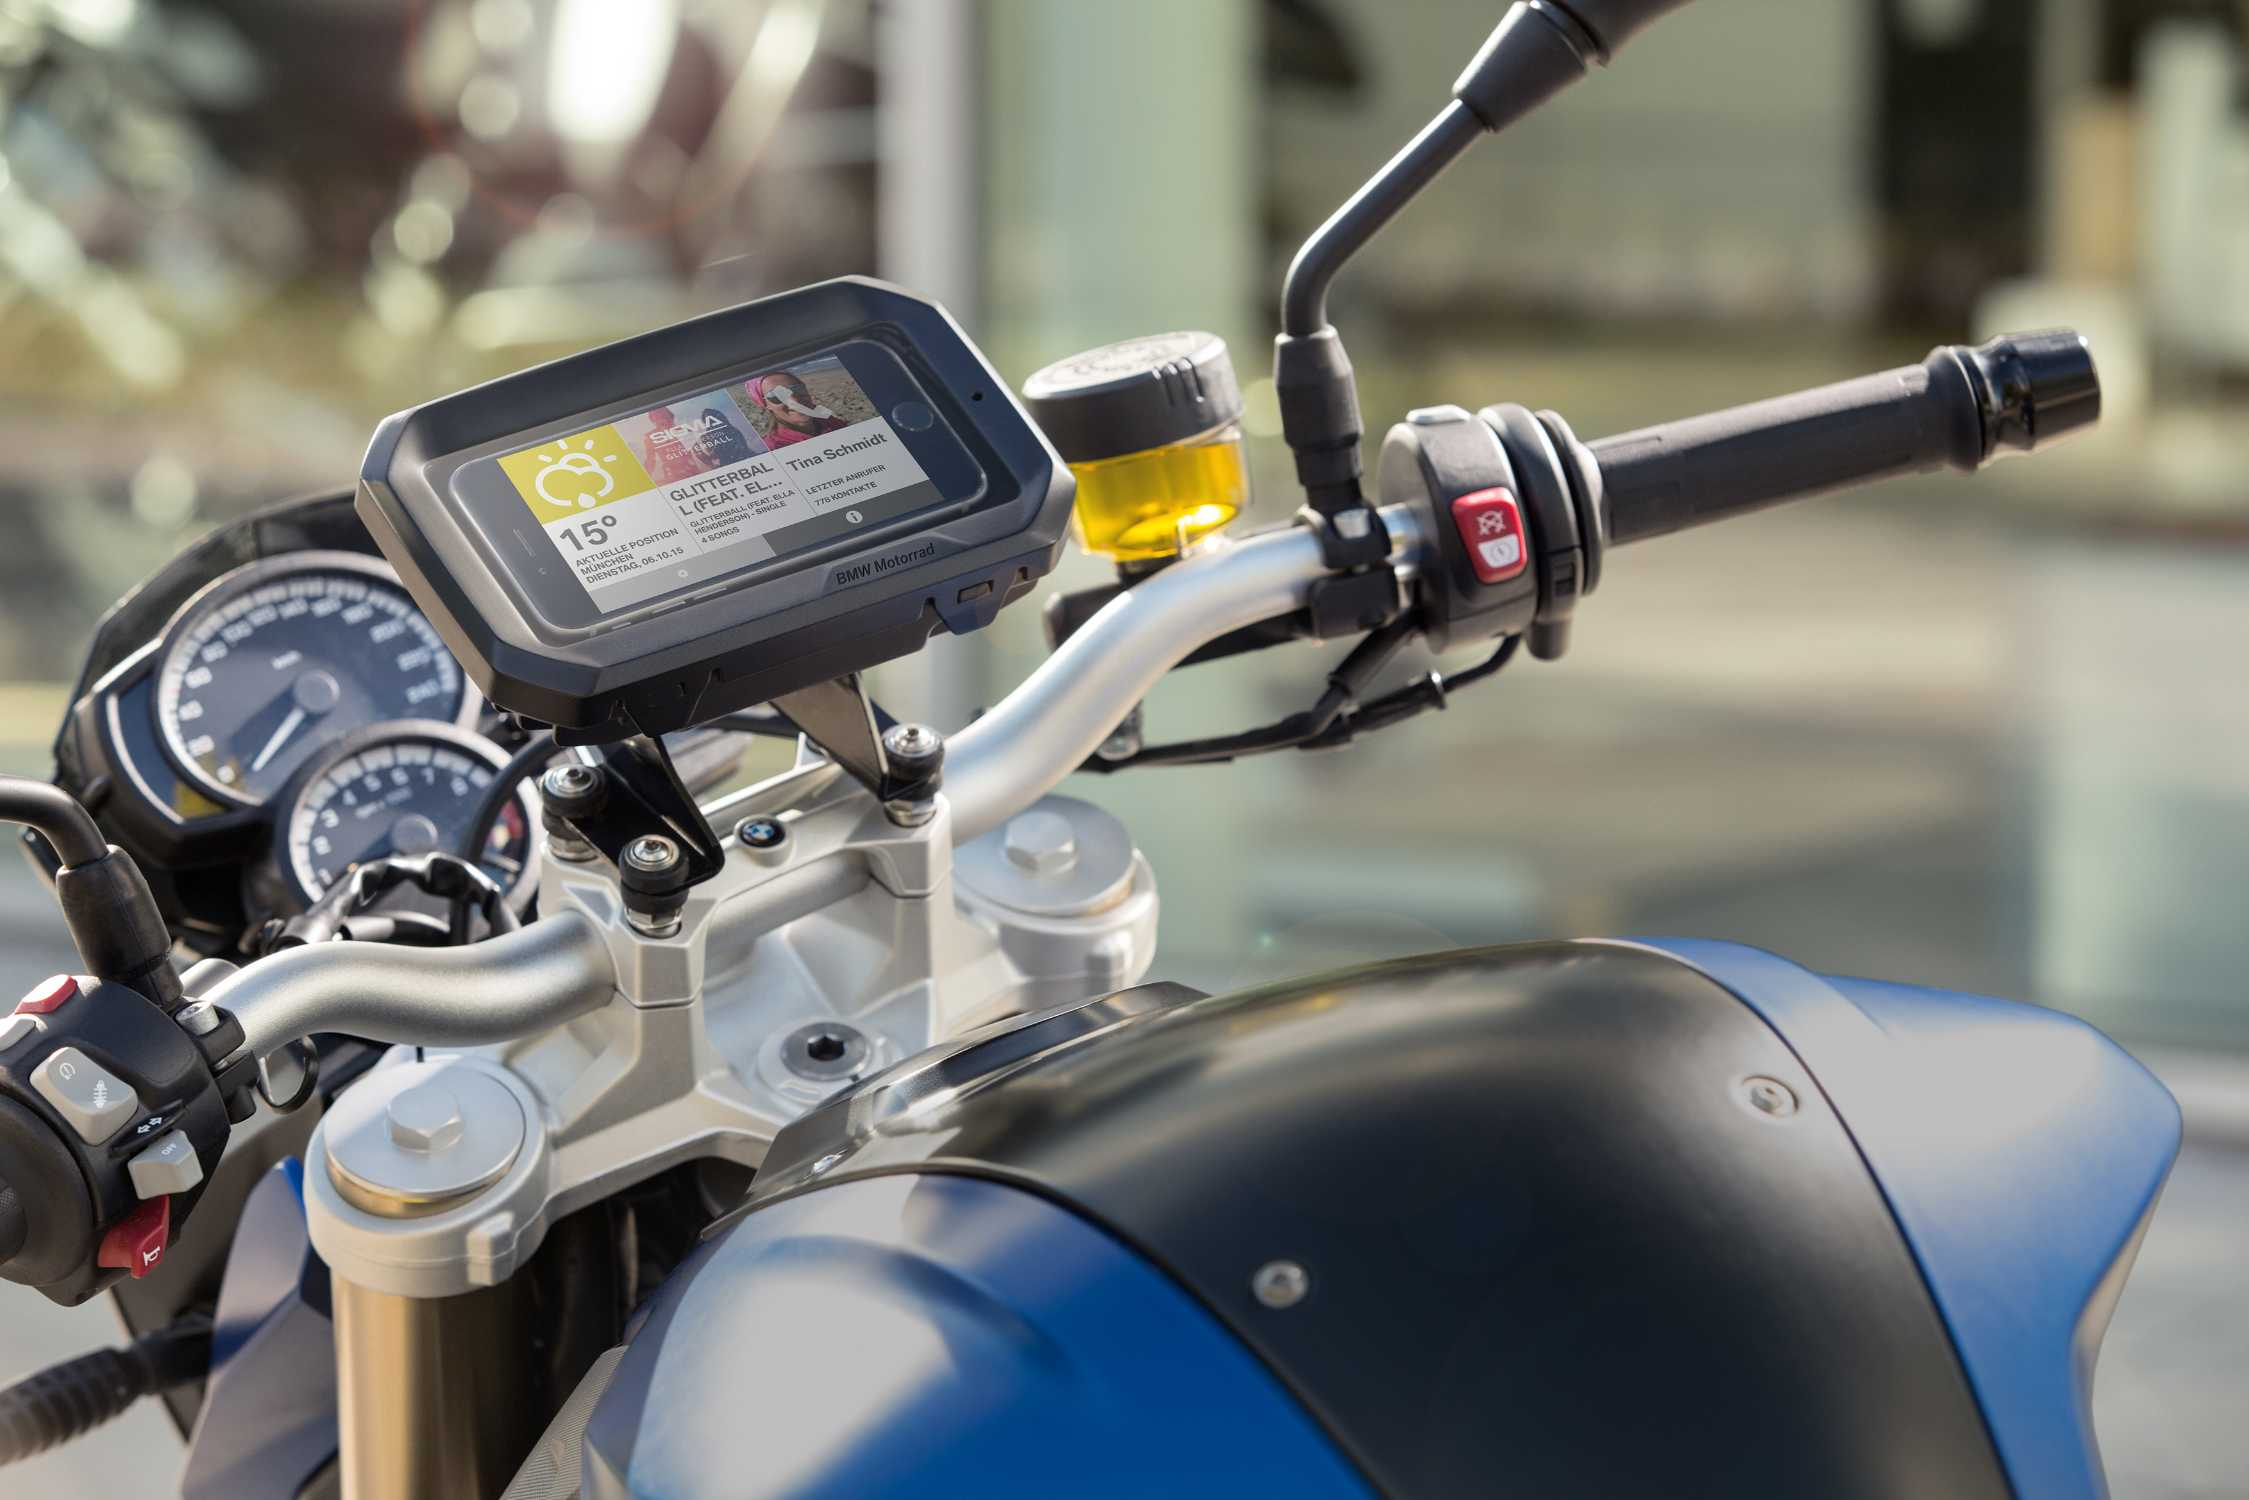 BMW Motorrad presents Smartphone Cradle for motorcycles and scooters. Perfect combination of fun on two wheels and multimedia.